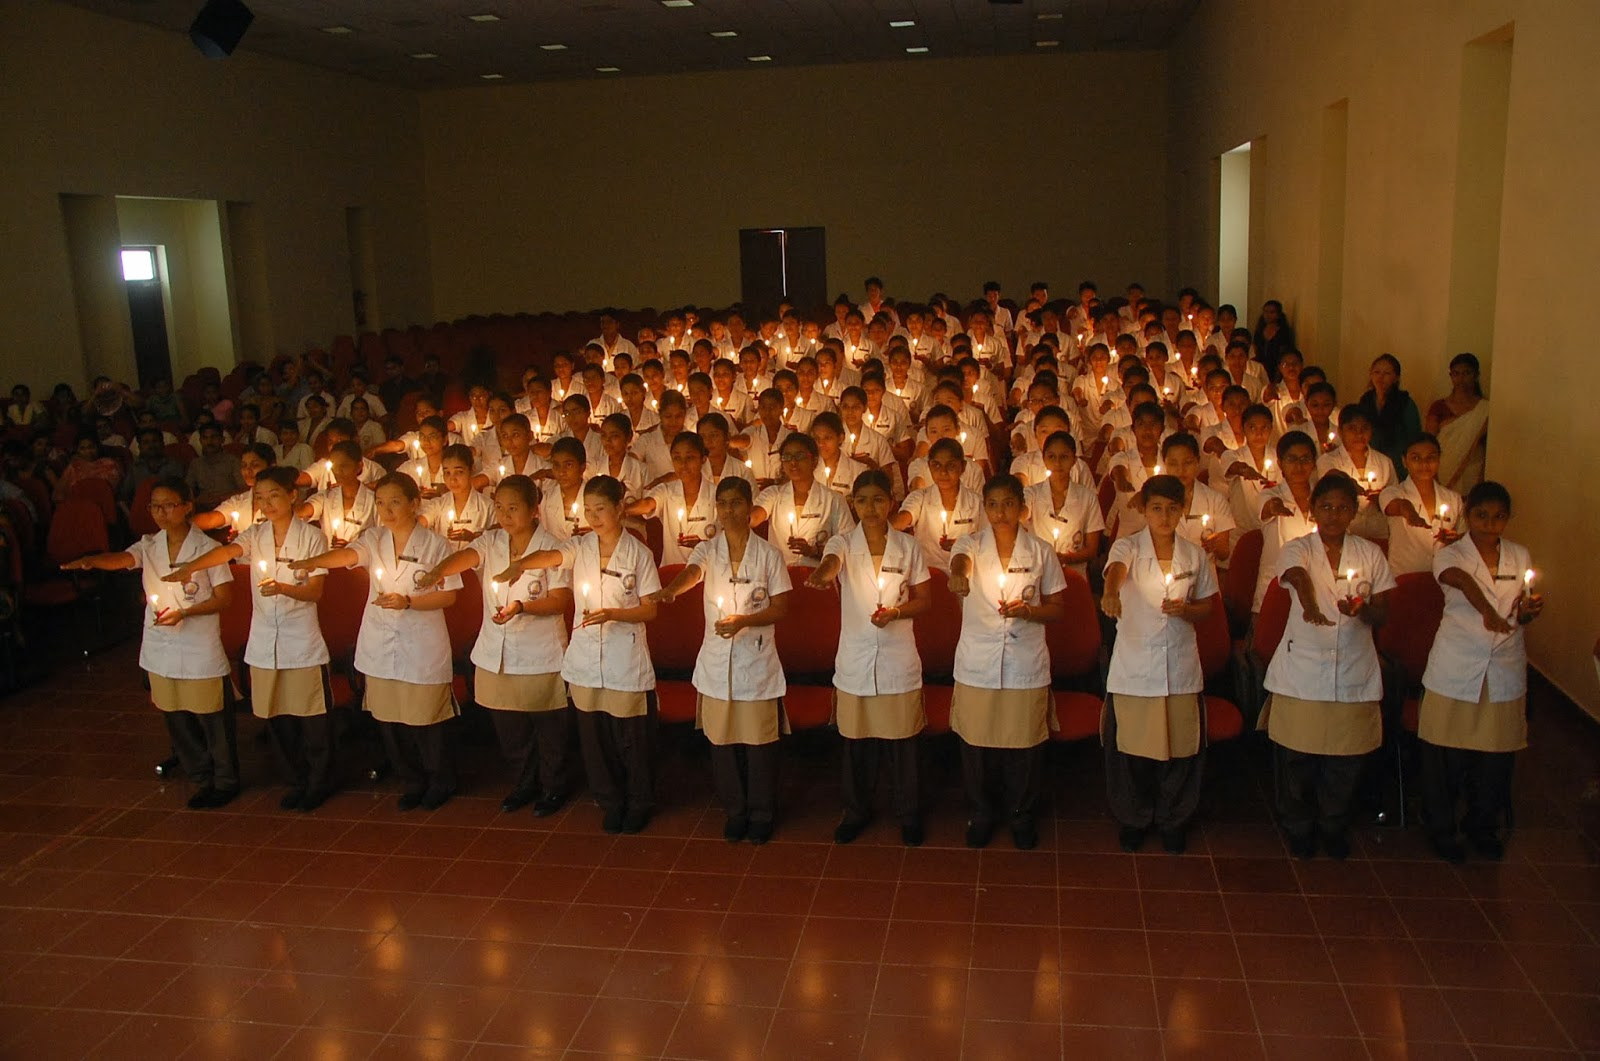 REPORT OF THE LAMP LIGHTING CEREMONY | Nitte for Lighting Lamp Ceremony  166kxo